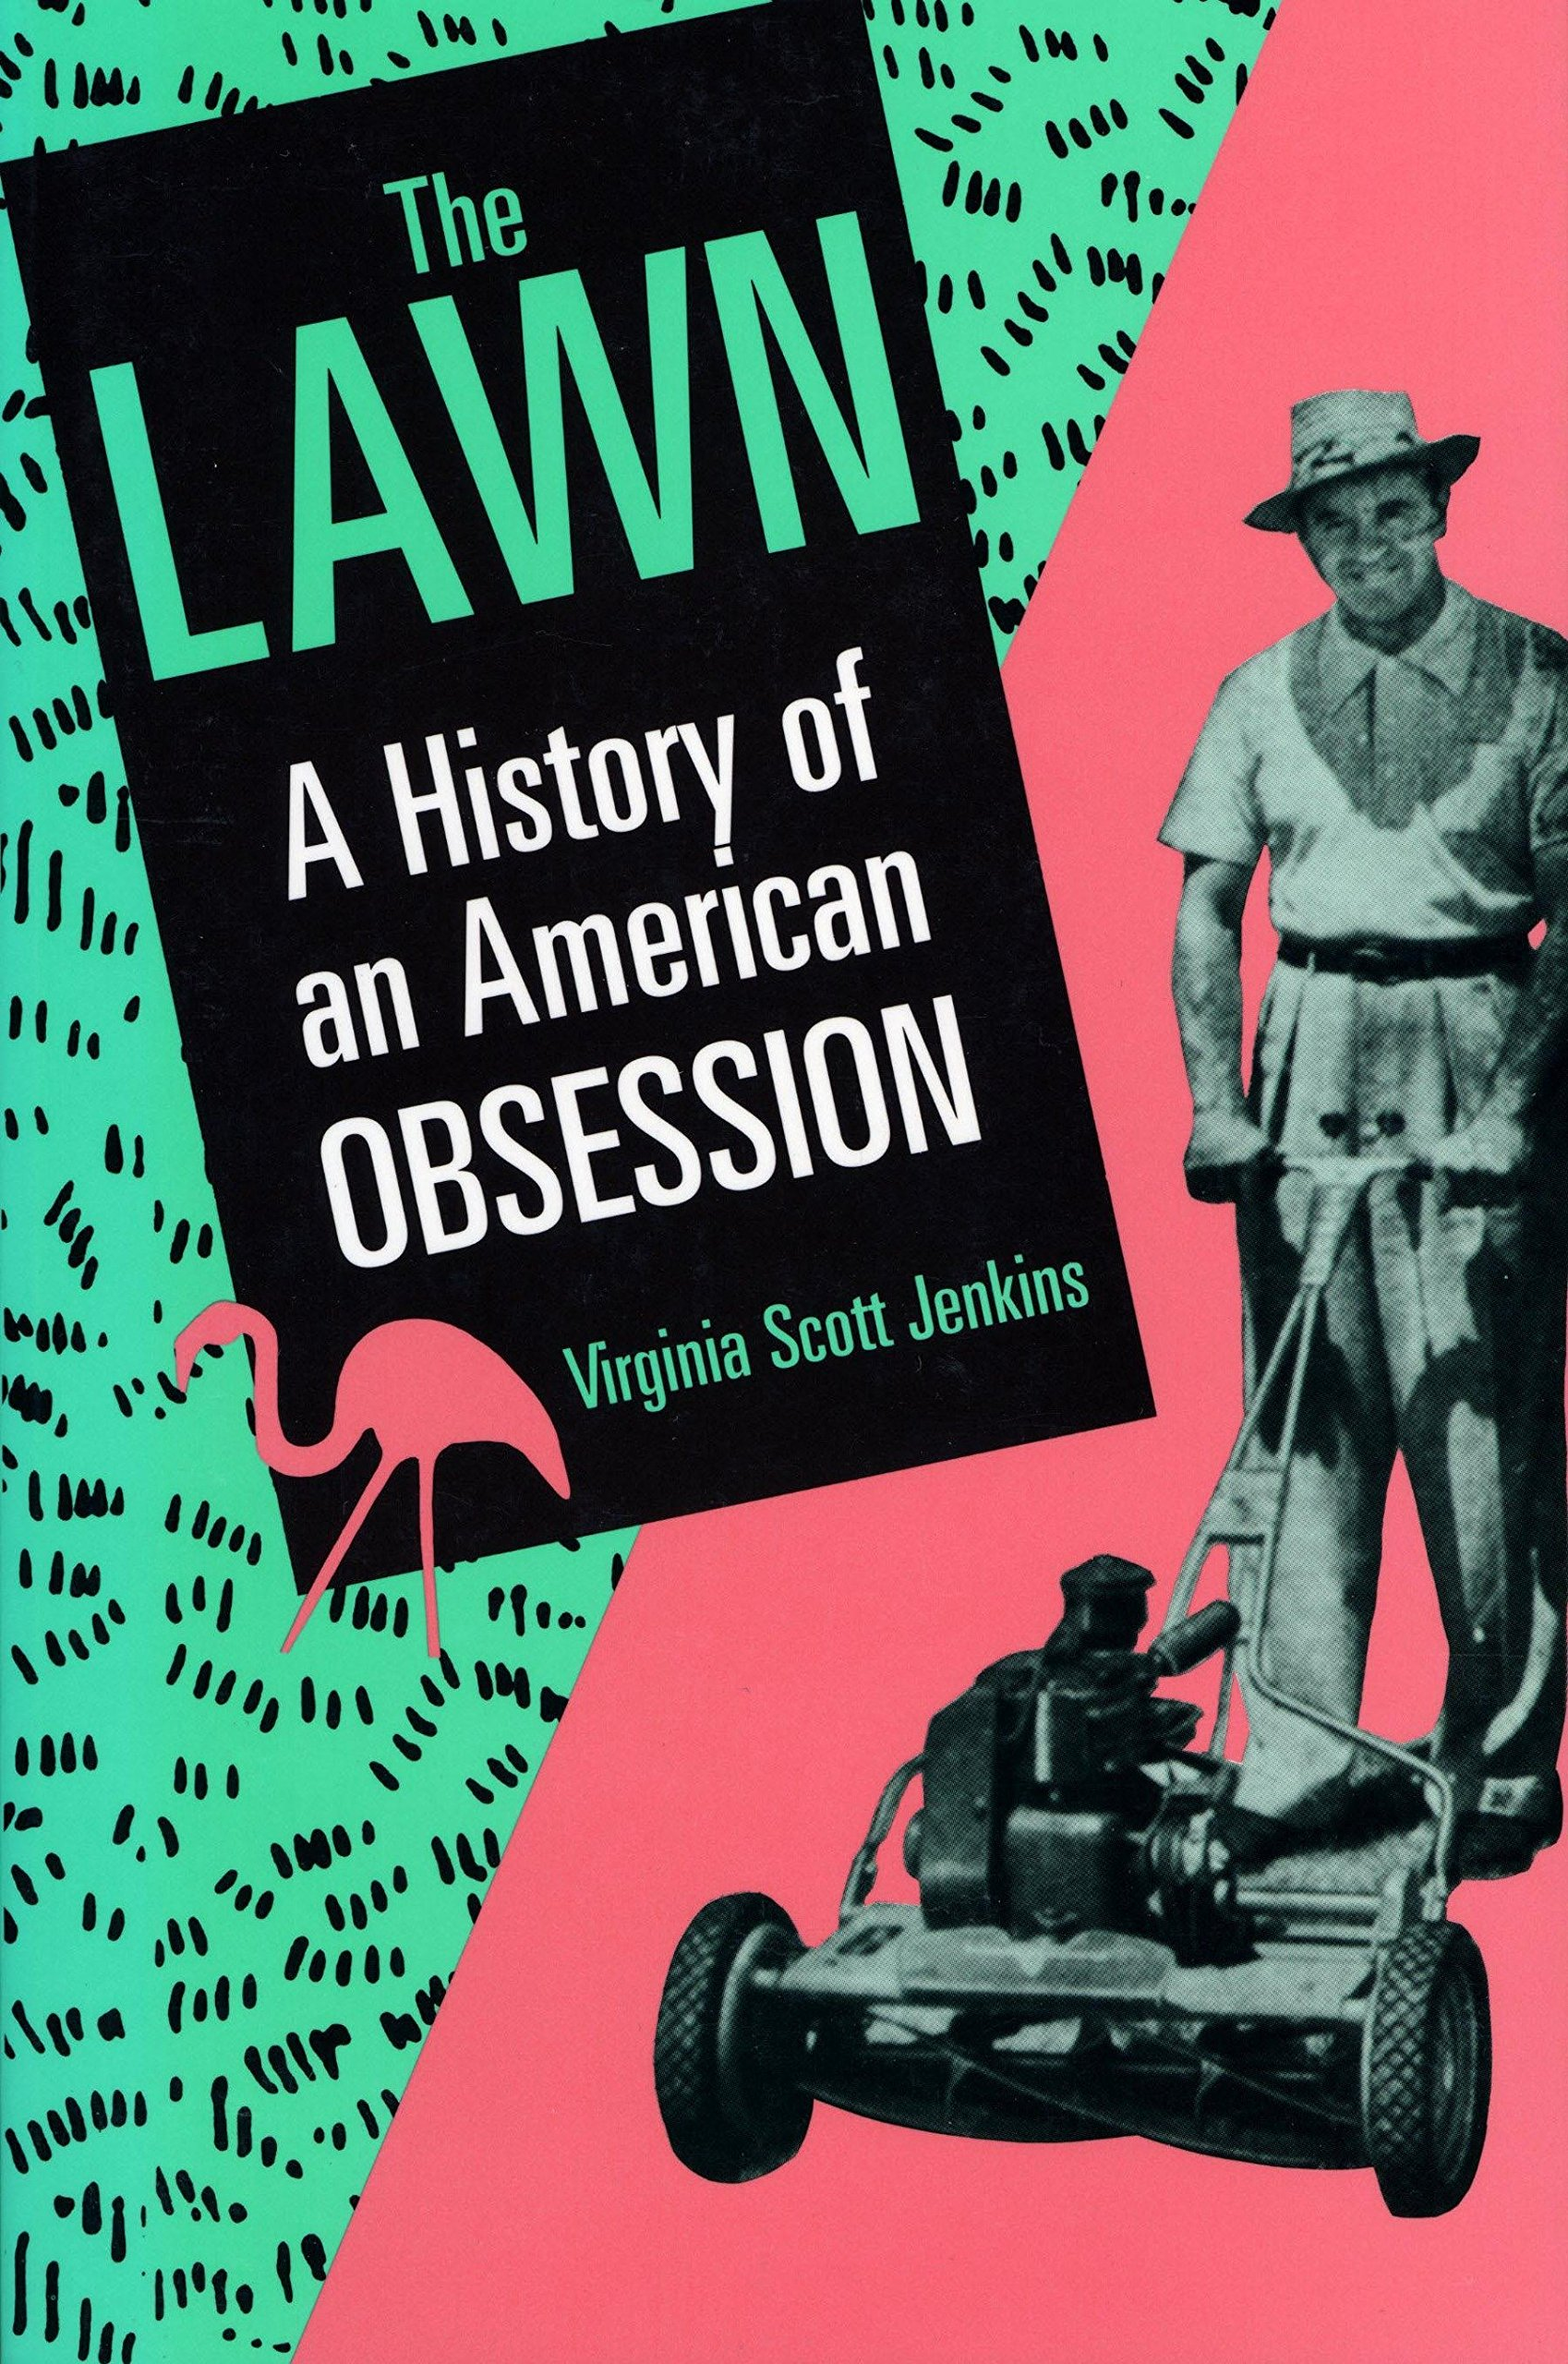 The Lawn by Virginia Scott Jenkins - The cultural history of American grass.